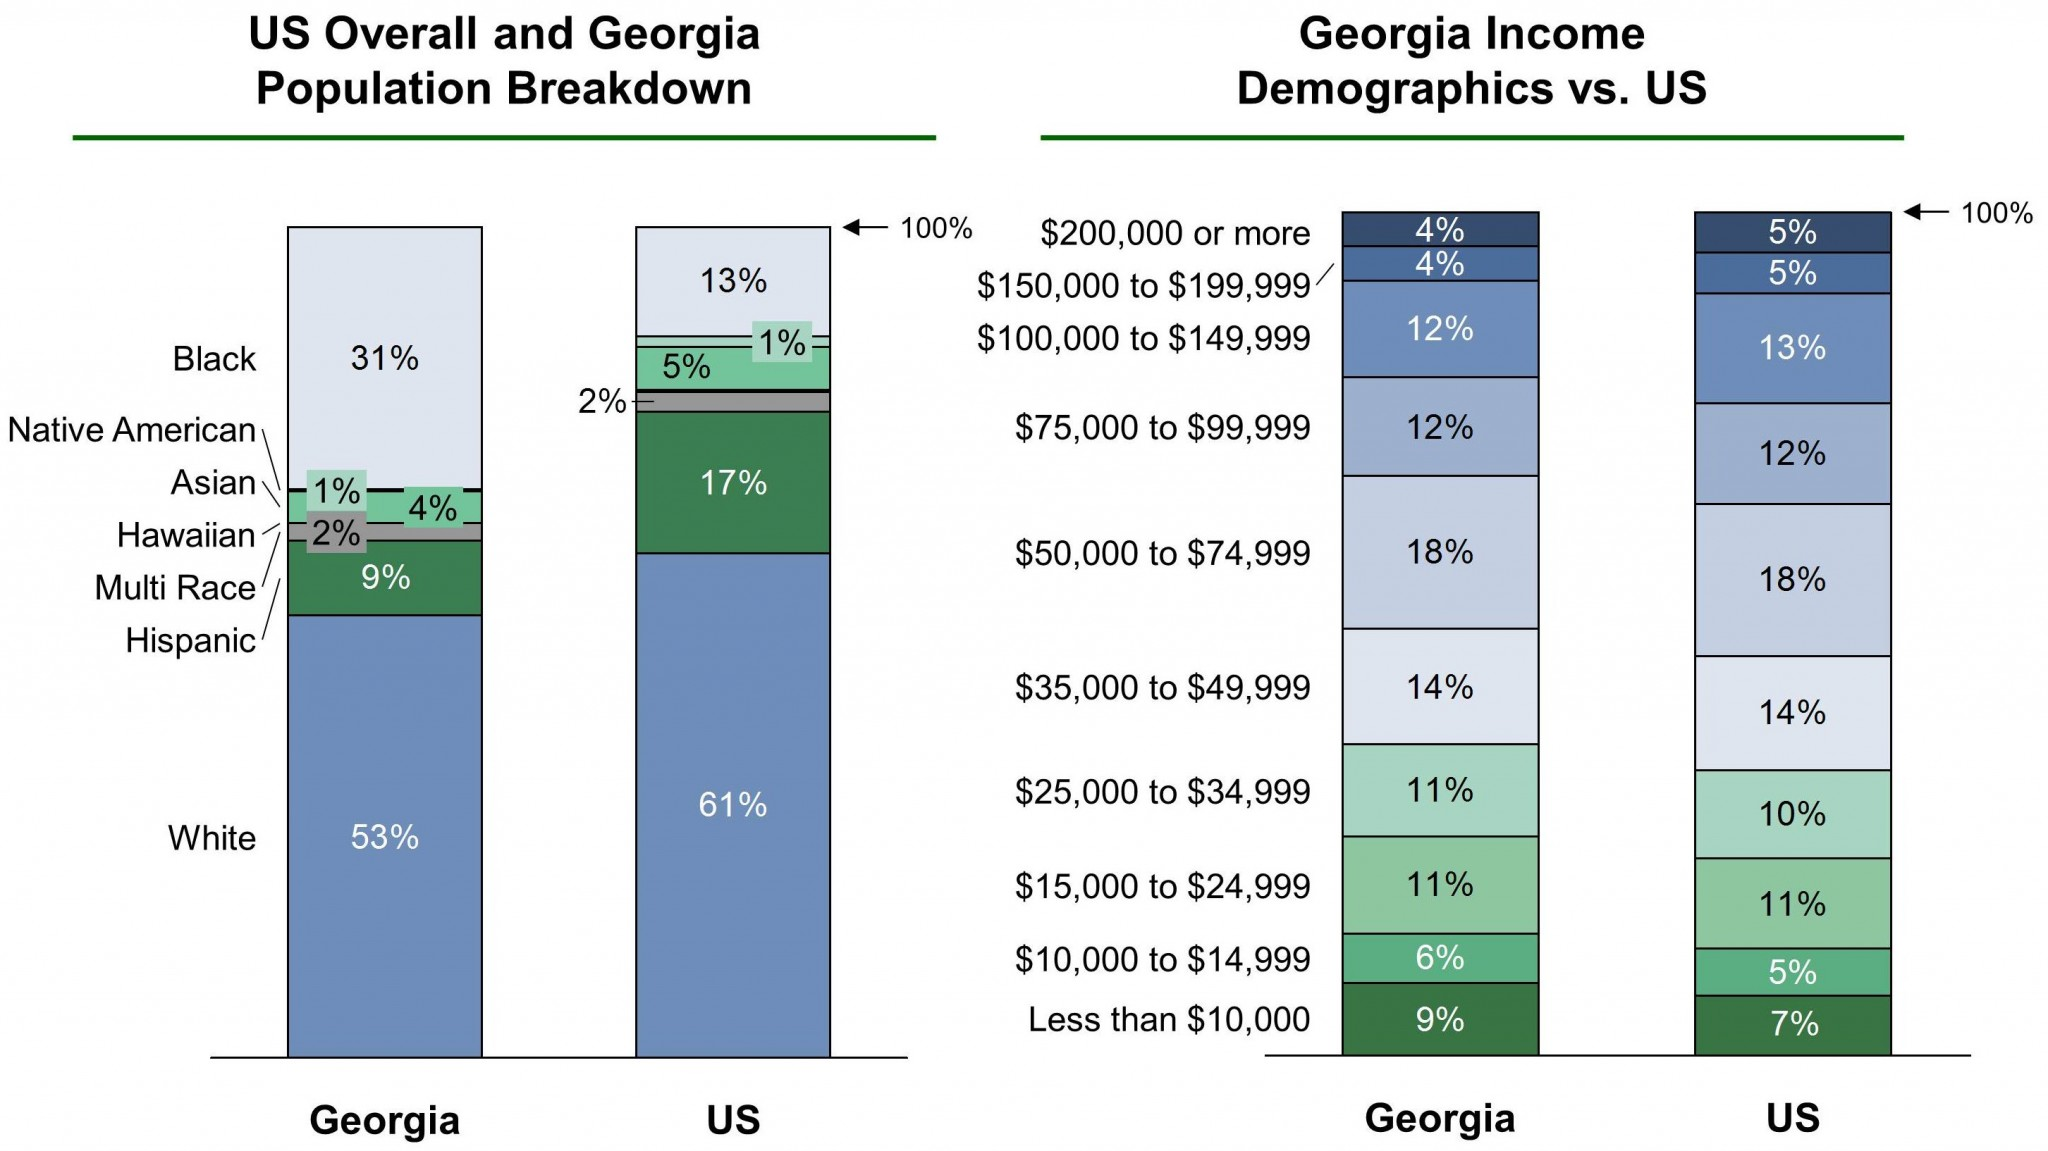 Georgia EB-5 Regional Center Demographics VF